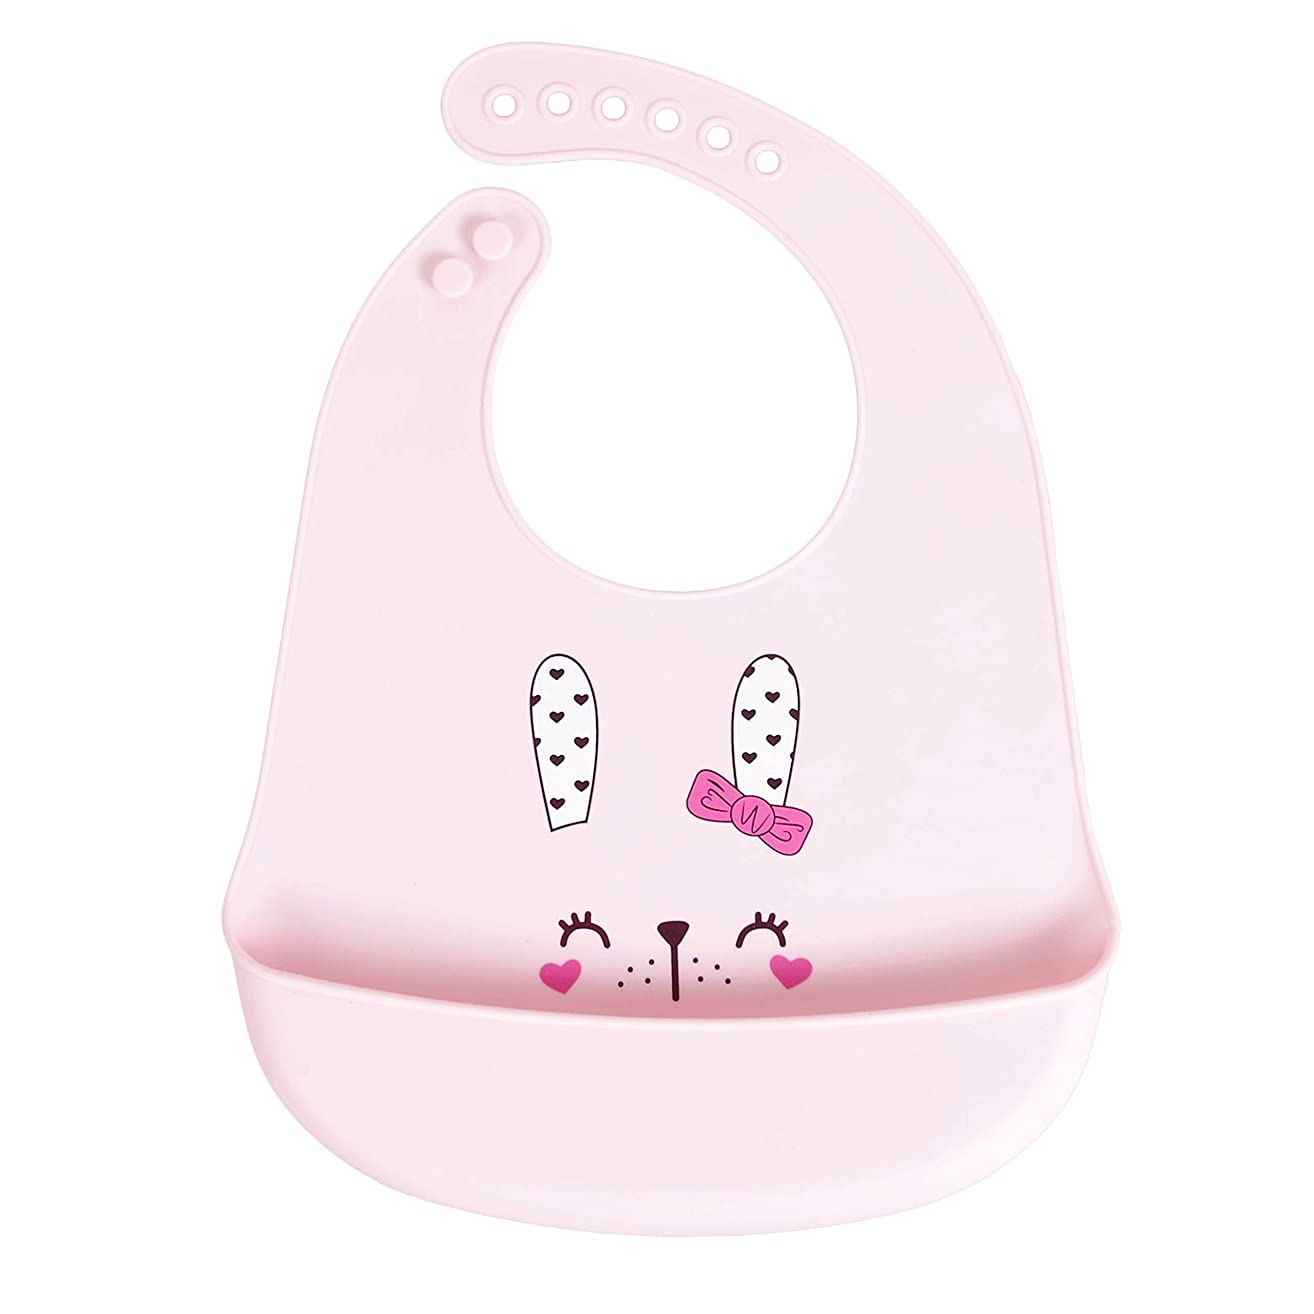 Waterproof Silicone Bib For Toddler Baby Bibs for Girls and Boys Bucket Bib Water Pockets(Rabbit)